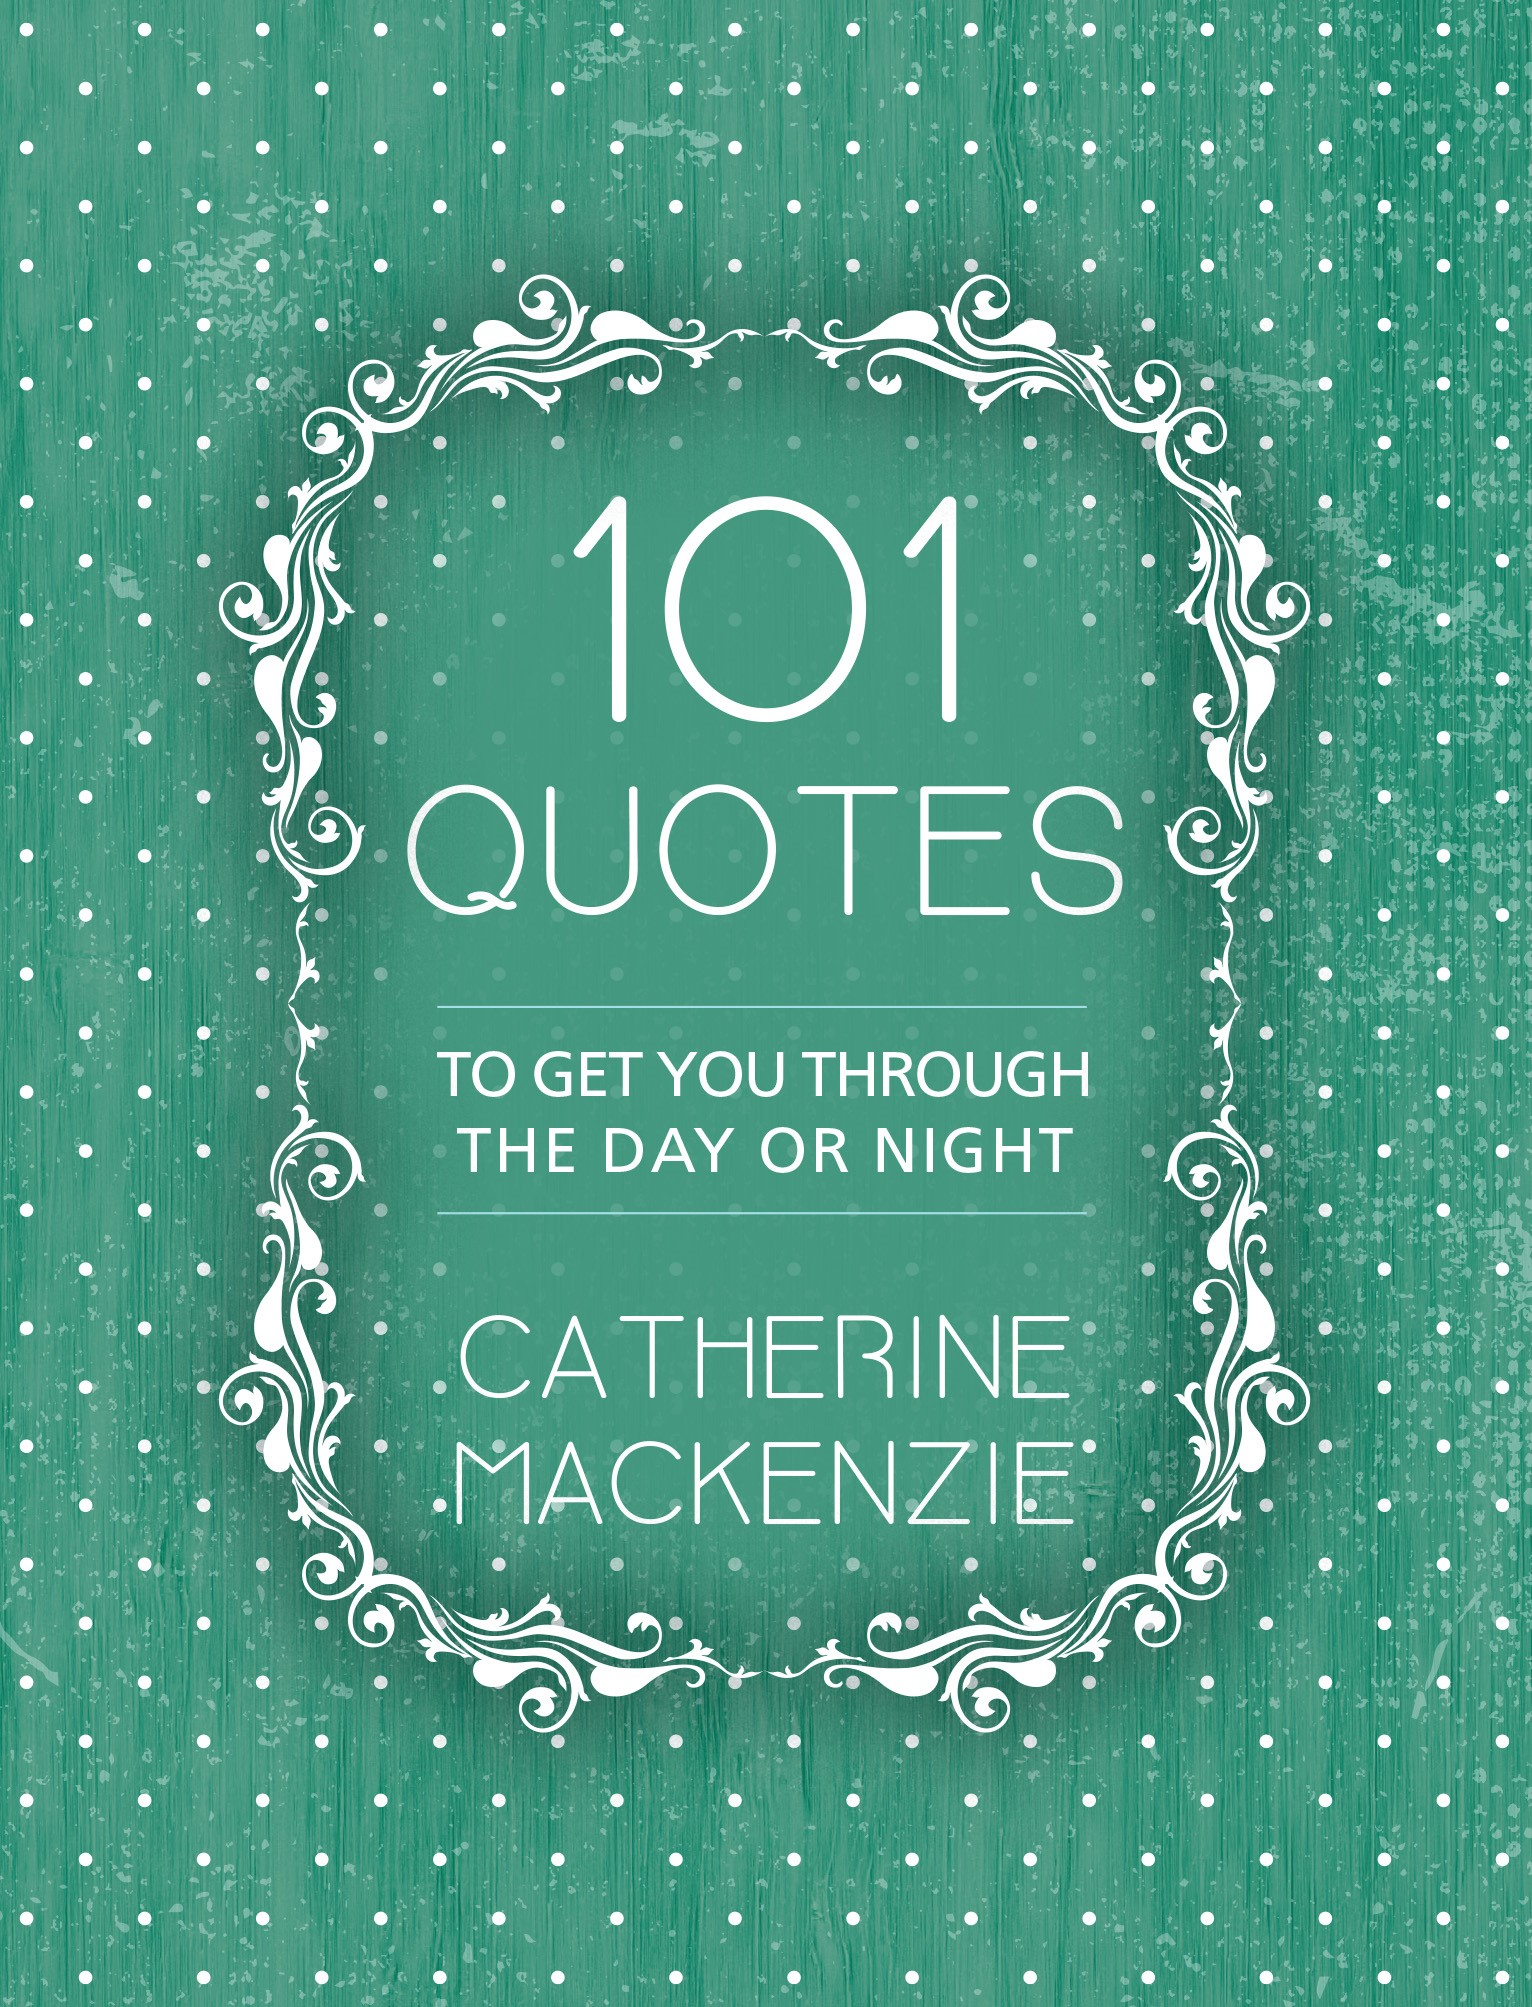 Quotes To Get You Through The Day 101 Quotes To Get You Through The Day Or Night  Ritchie Christian